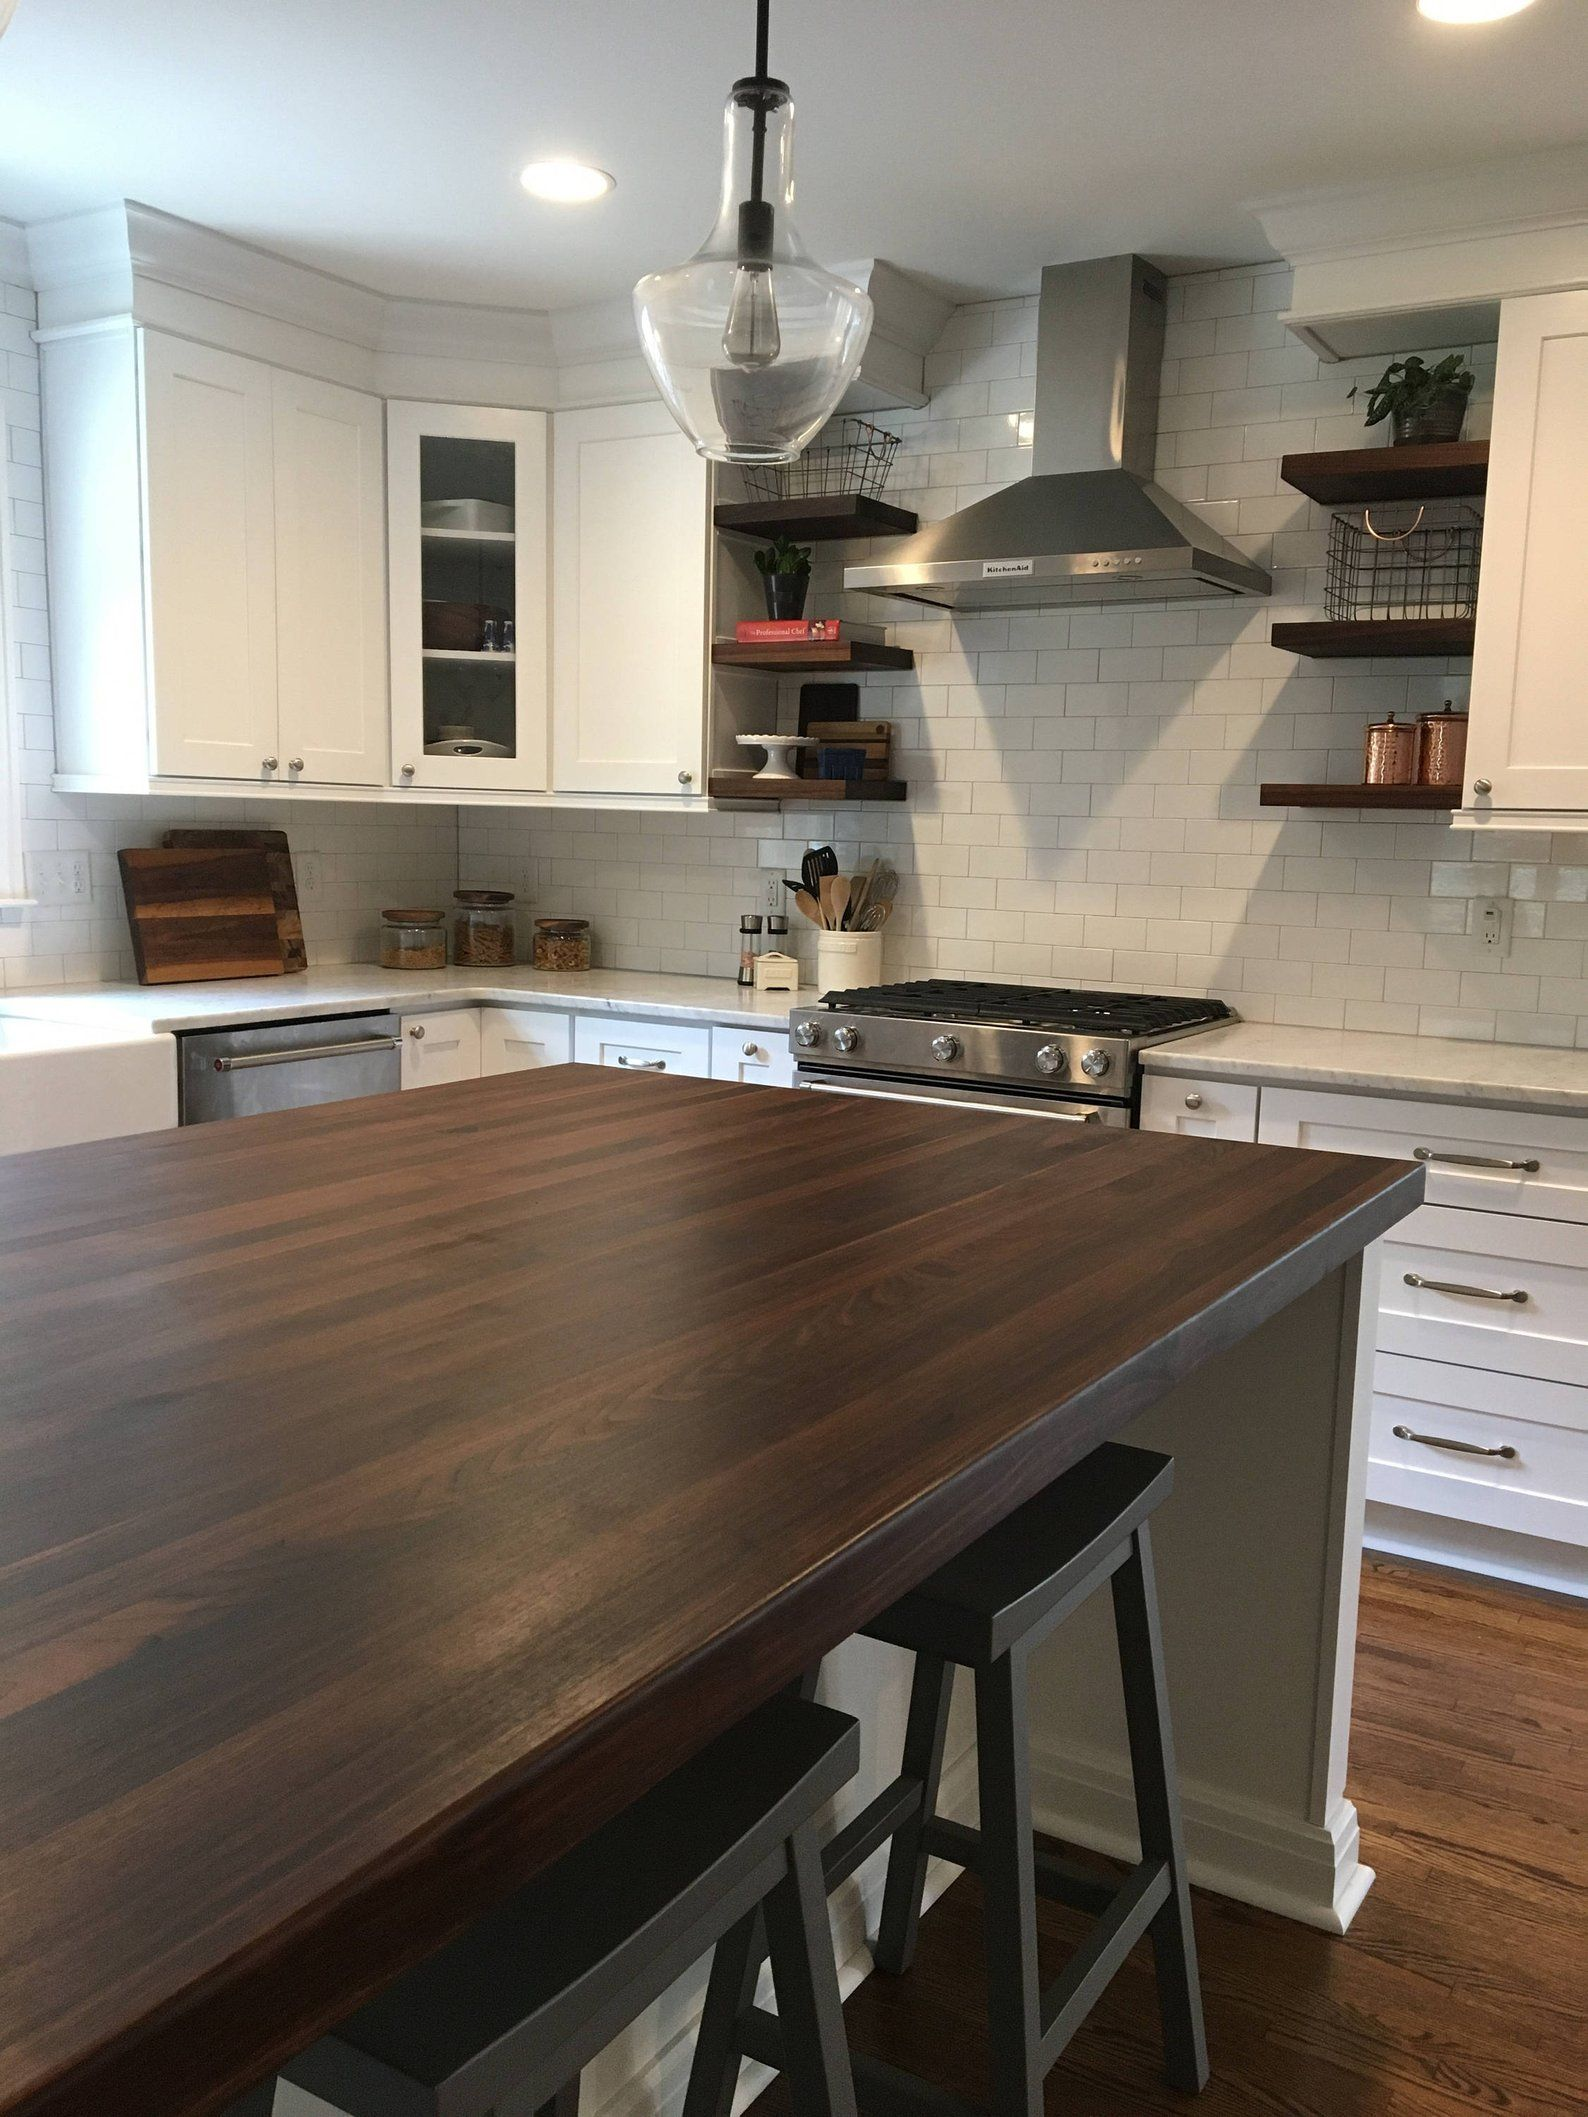 Black Walnut Butcher Block Counter Top Island Top Contemporary Kitchen Butcher Block Countertops Kitchen Design